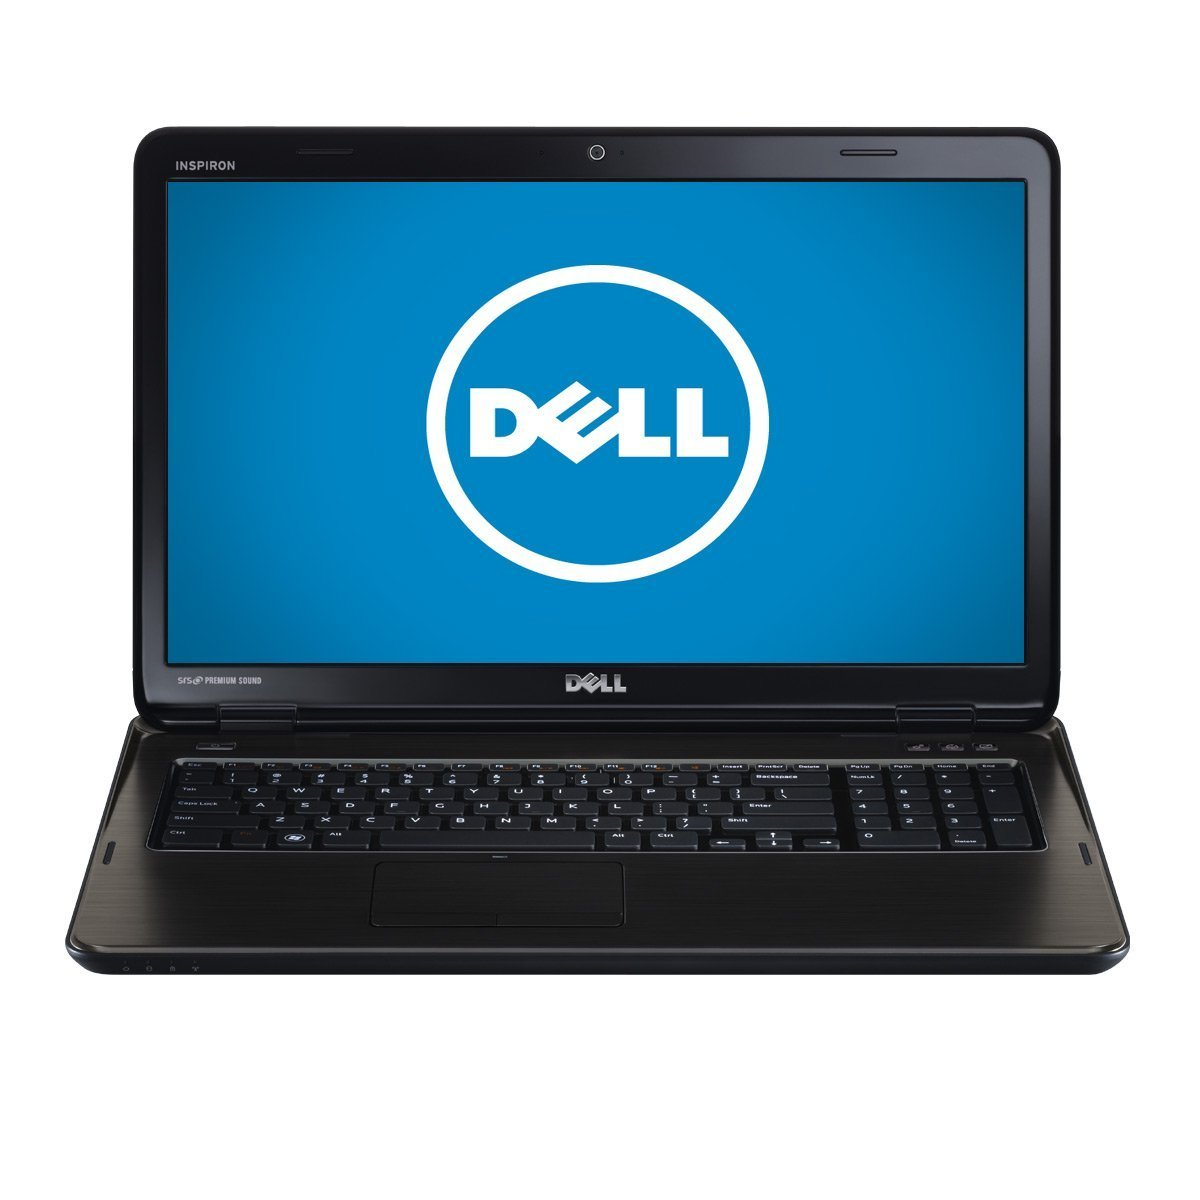 Dell laptop for domestic users